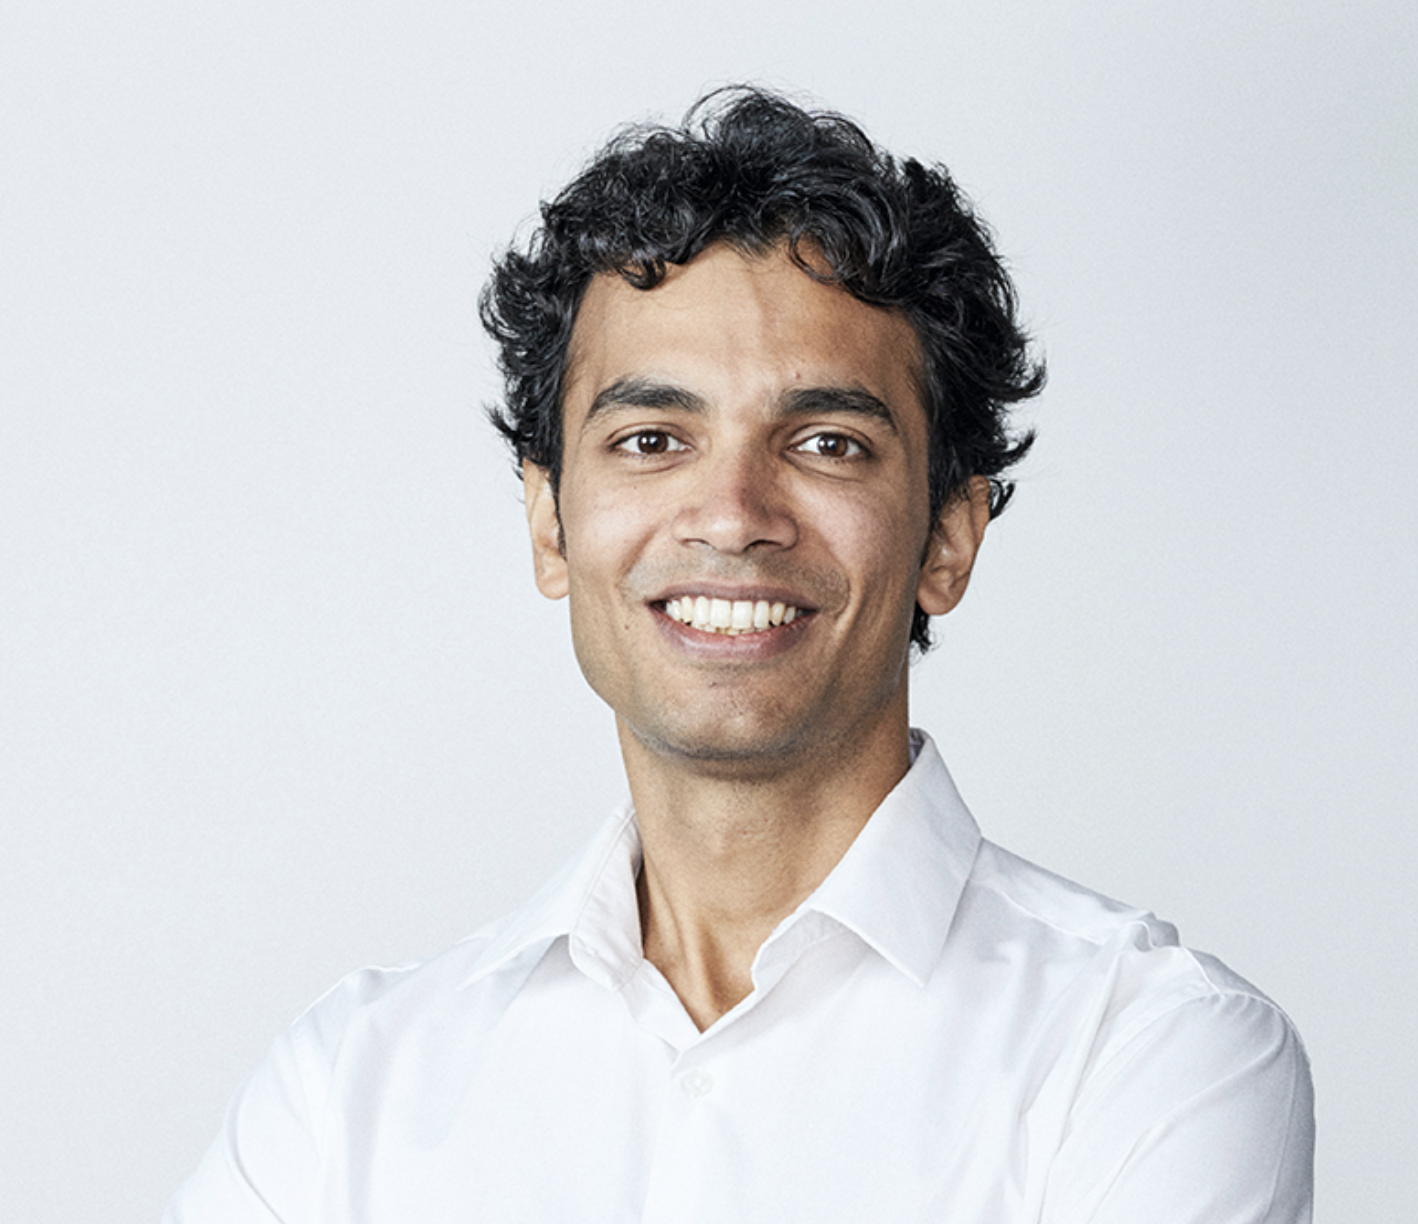 Asia Tech Podcast – Episode 43 – Nikhil Kapur – Partner at STRIVE – The Belief in the Capabilities of the Founder